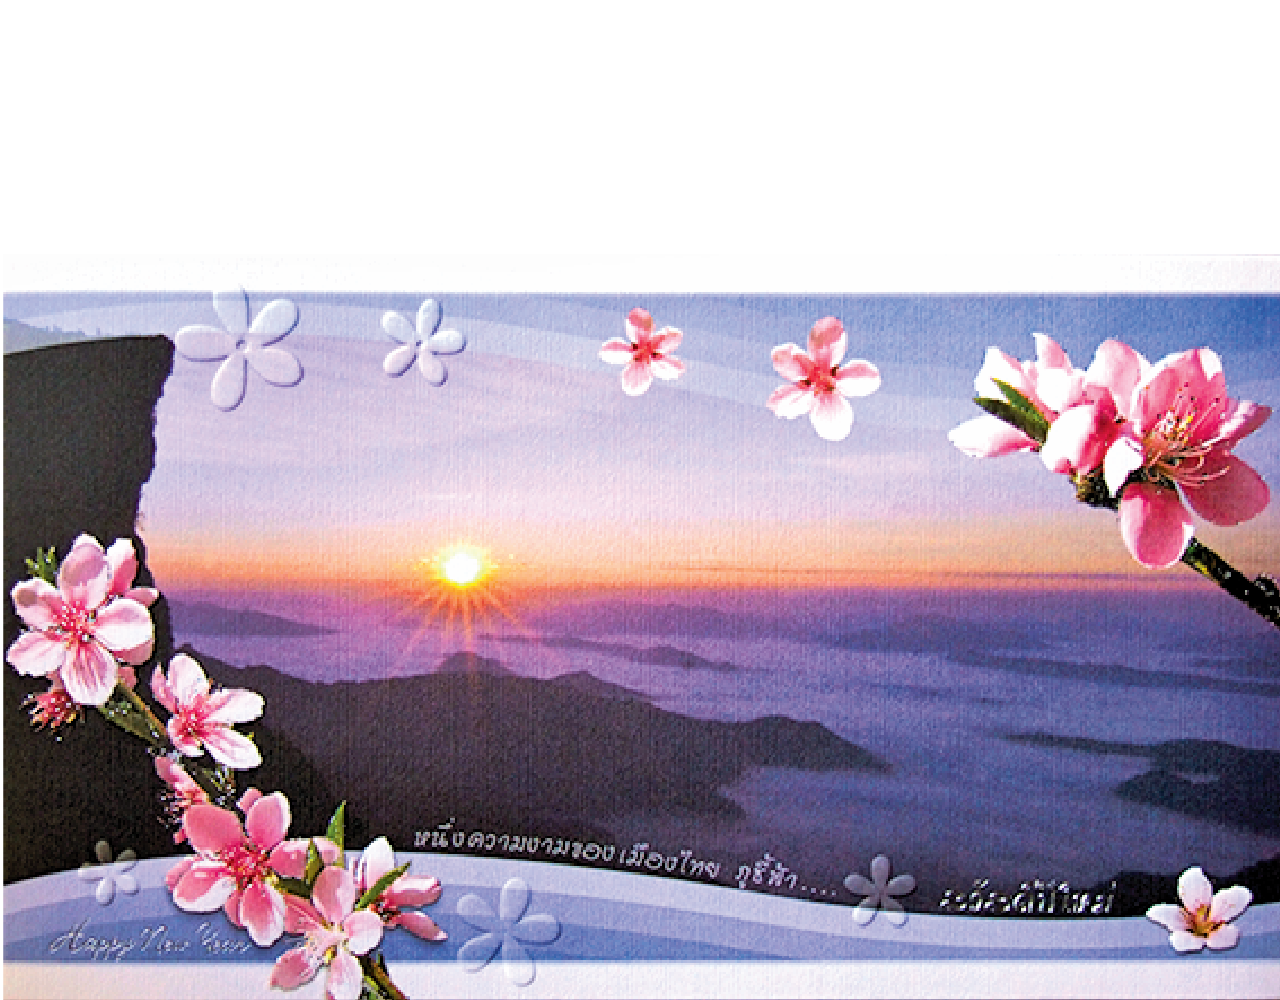 New year card 8×4 inch P 405 ฿ 16.00